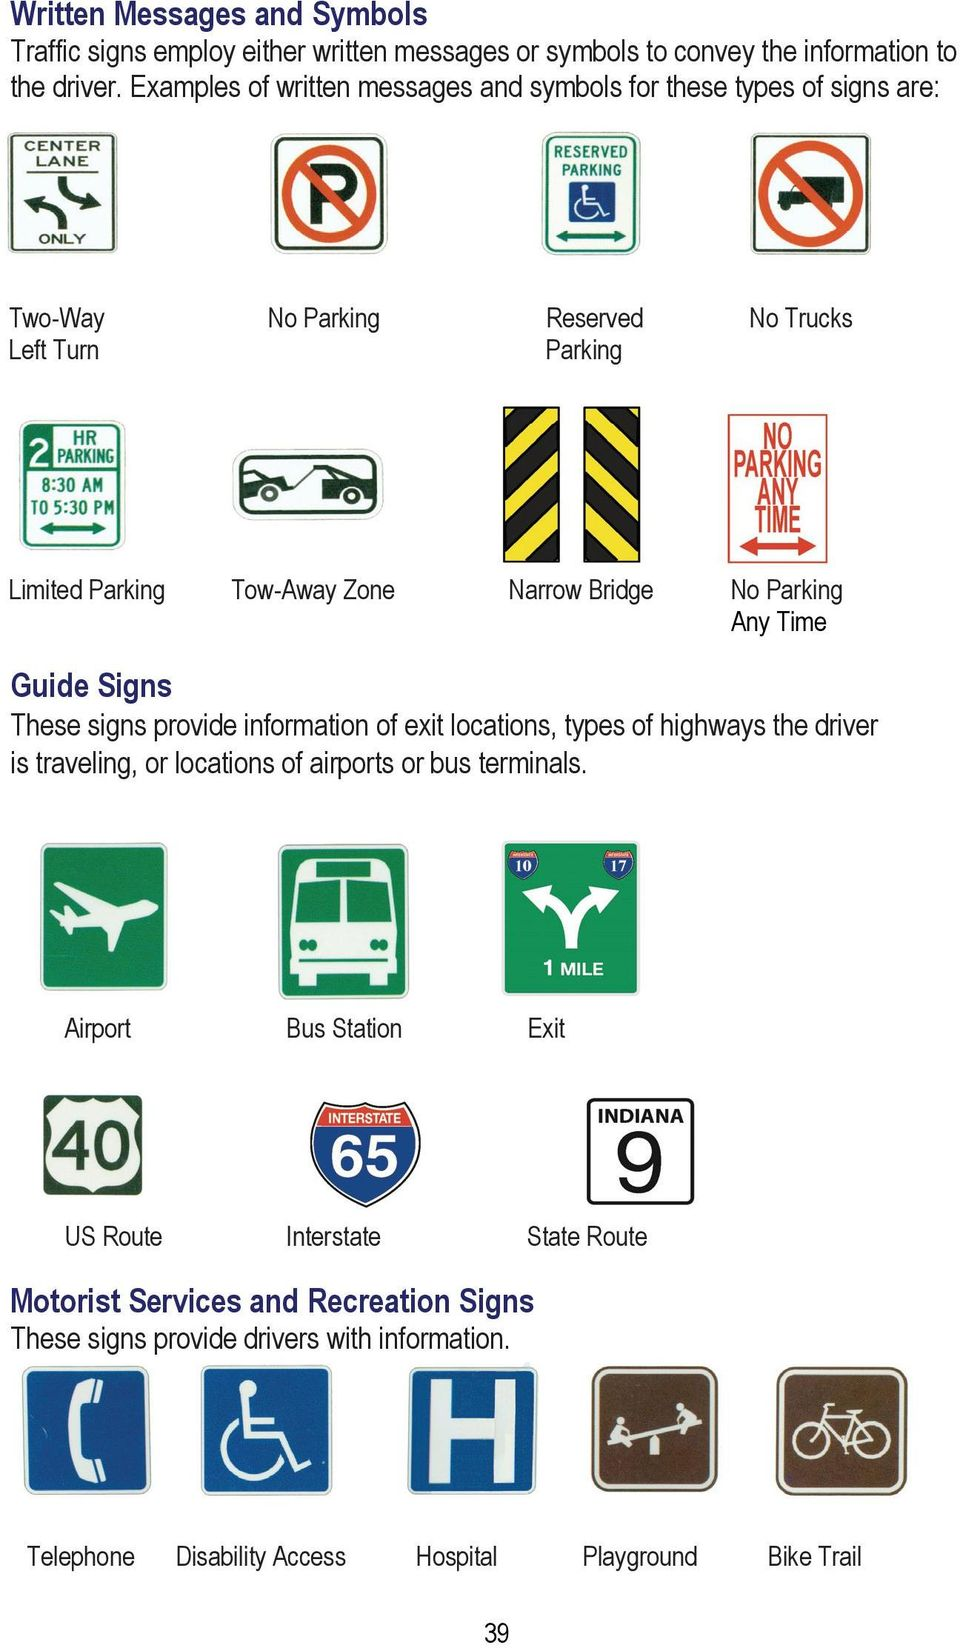 Bridge No Parking Any Time Guide Signs These signs provide information of exit locations, types of highways the driver is traveling, or locations of airports or bus